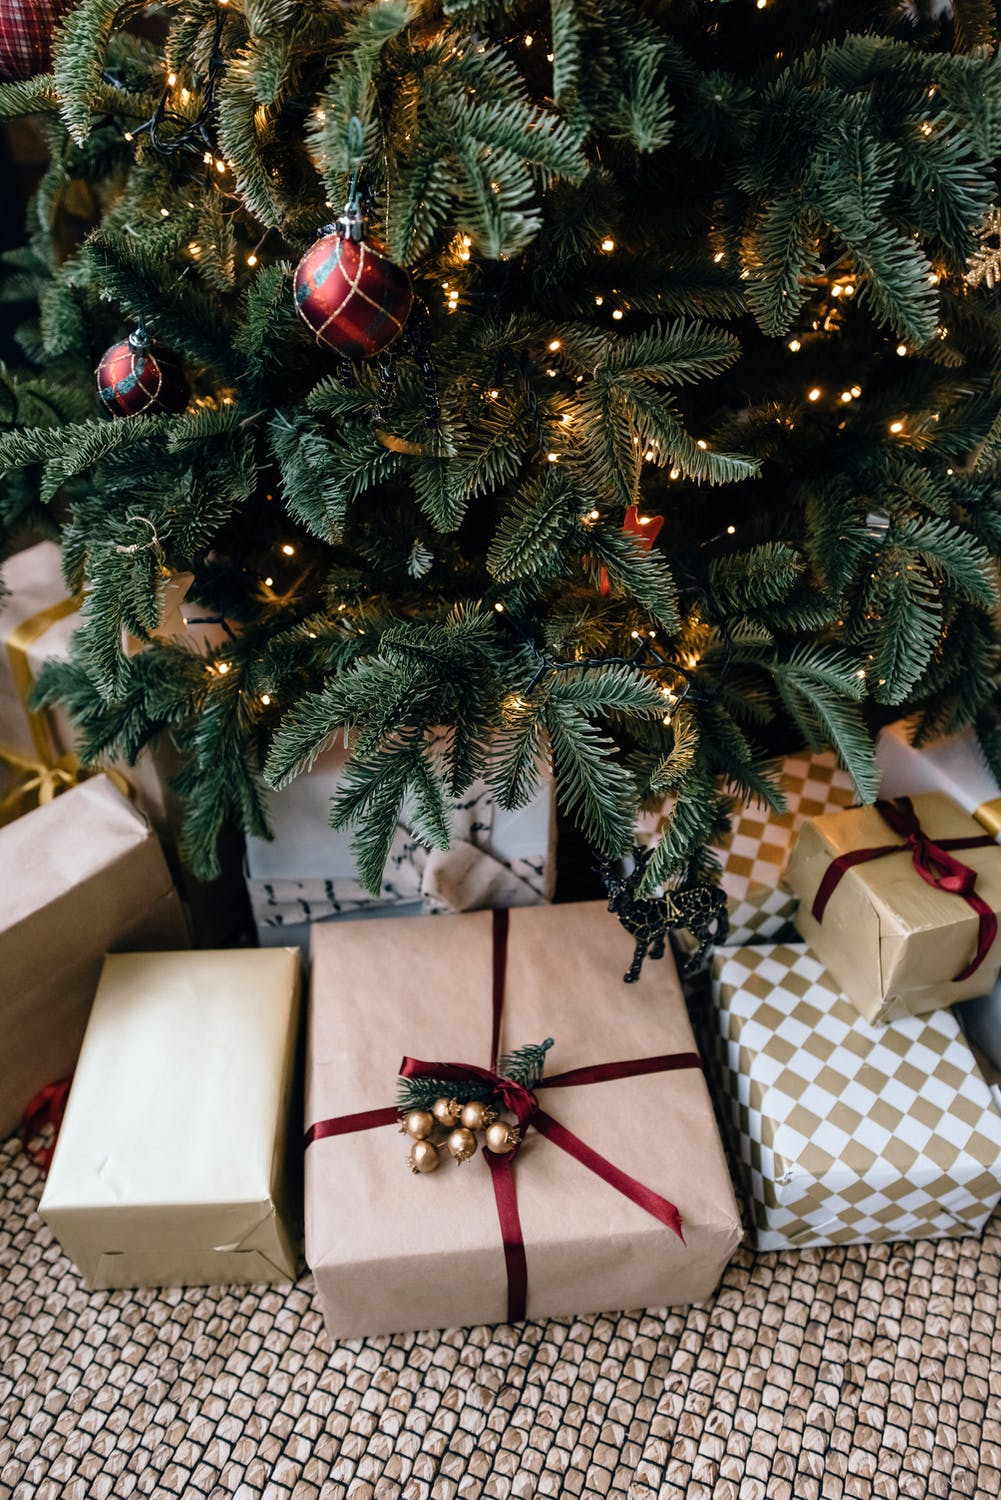 The Ultimate Gift Guide for 2020